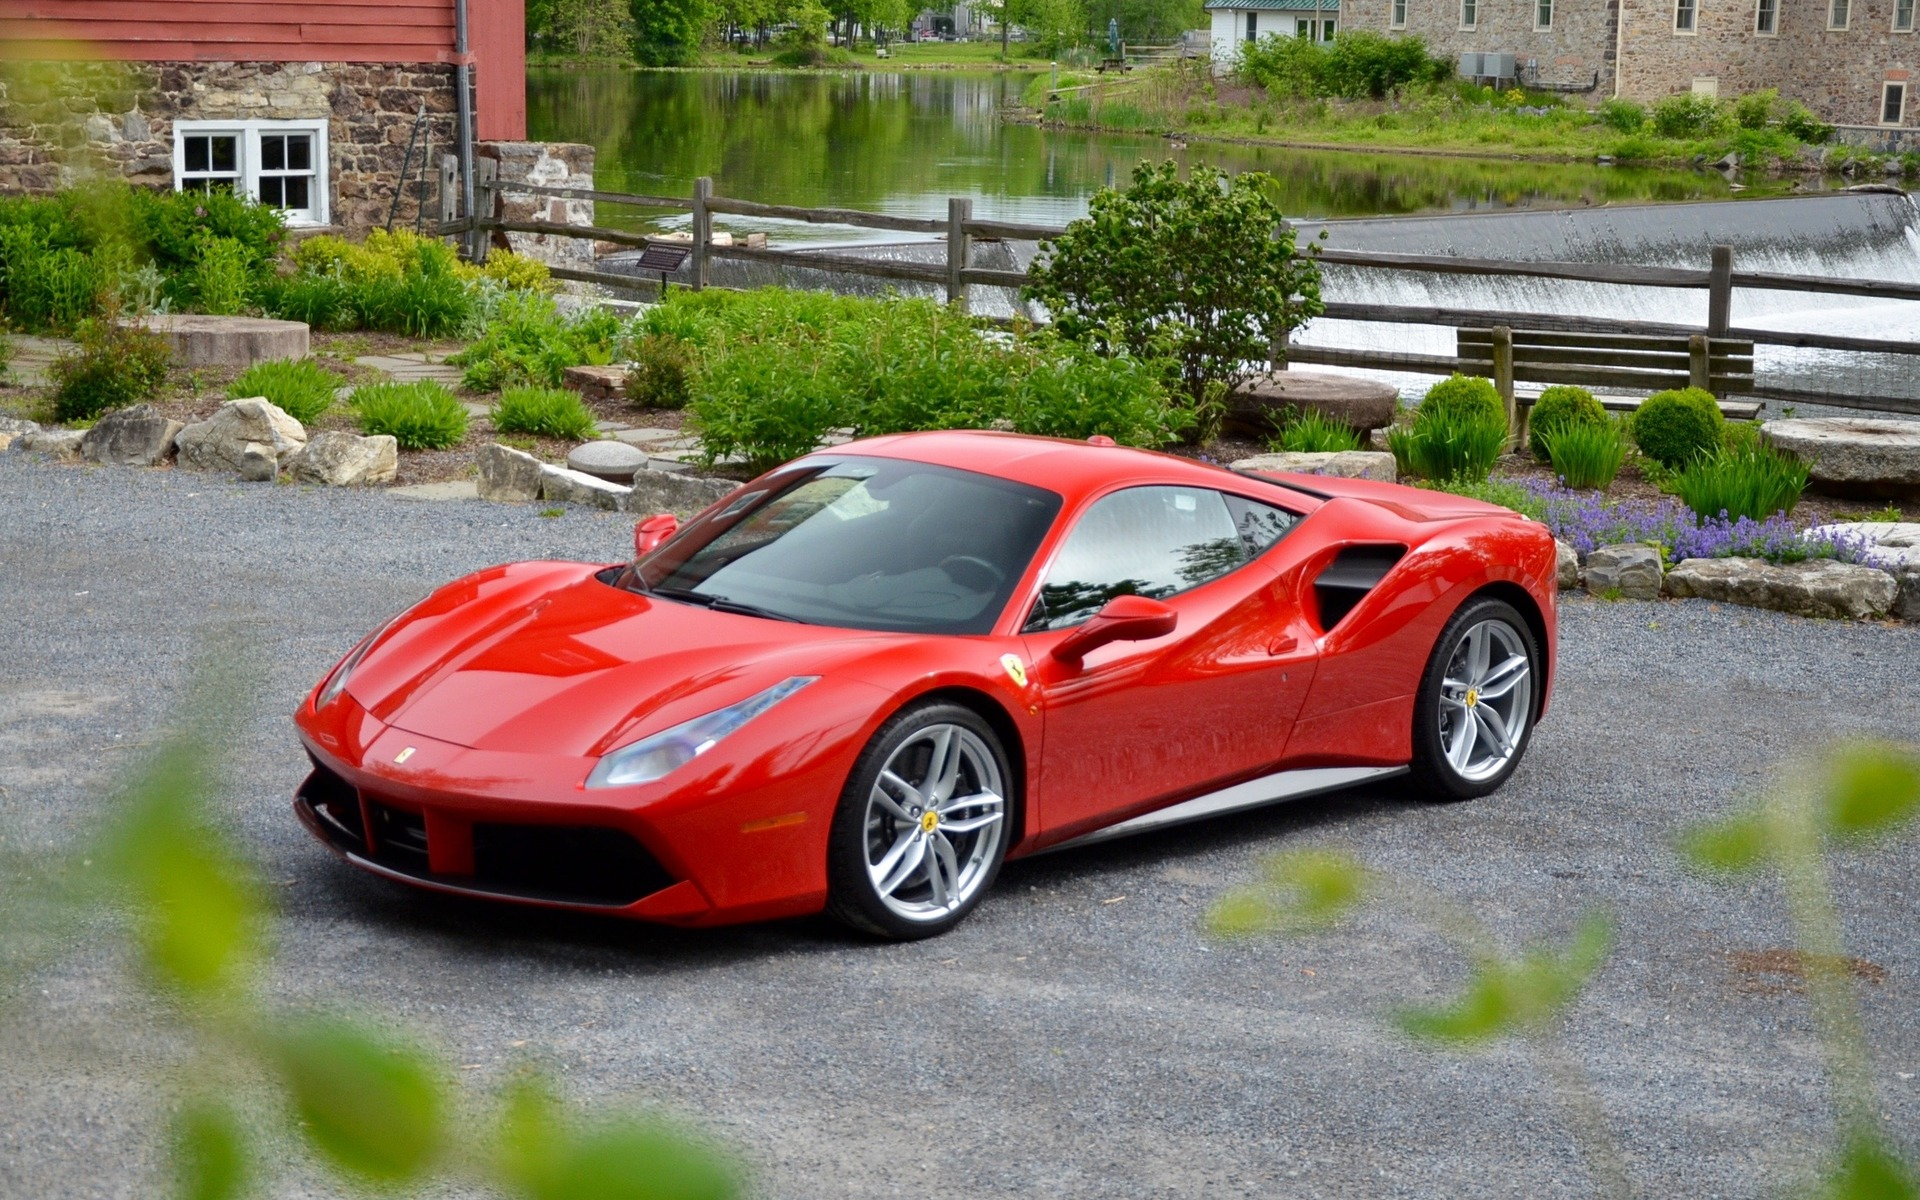 2017 ferrari 488 gtb specifications the car guide. Black Bedroom Furniture Sets. Home Design Ideas